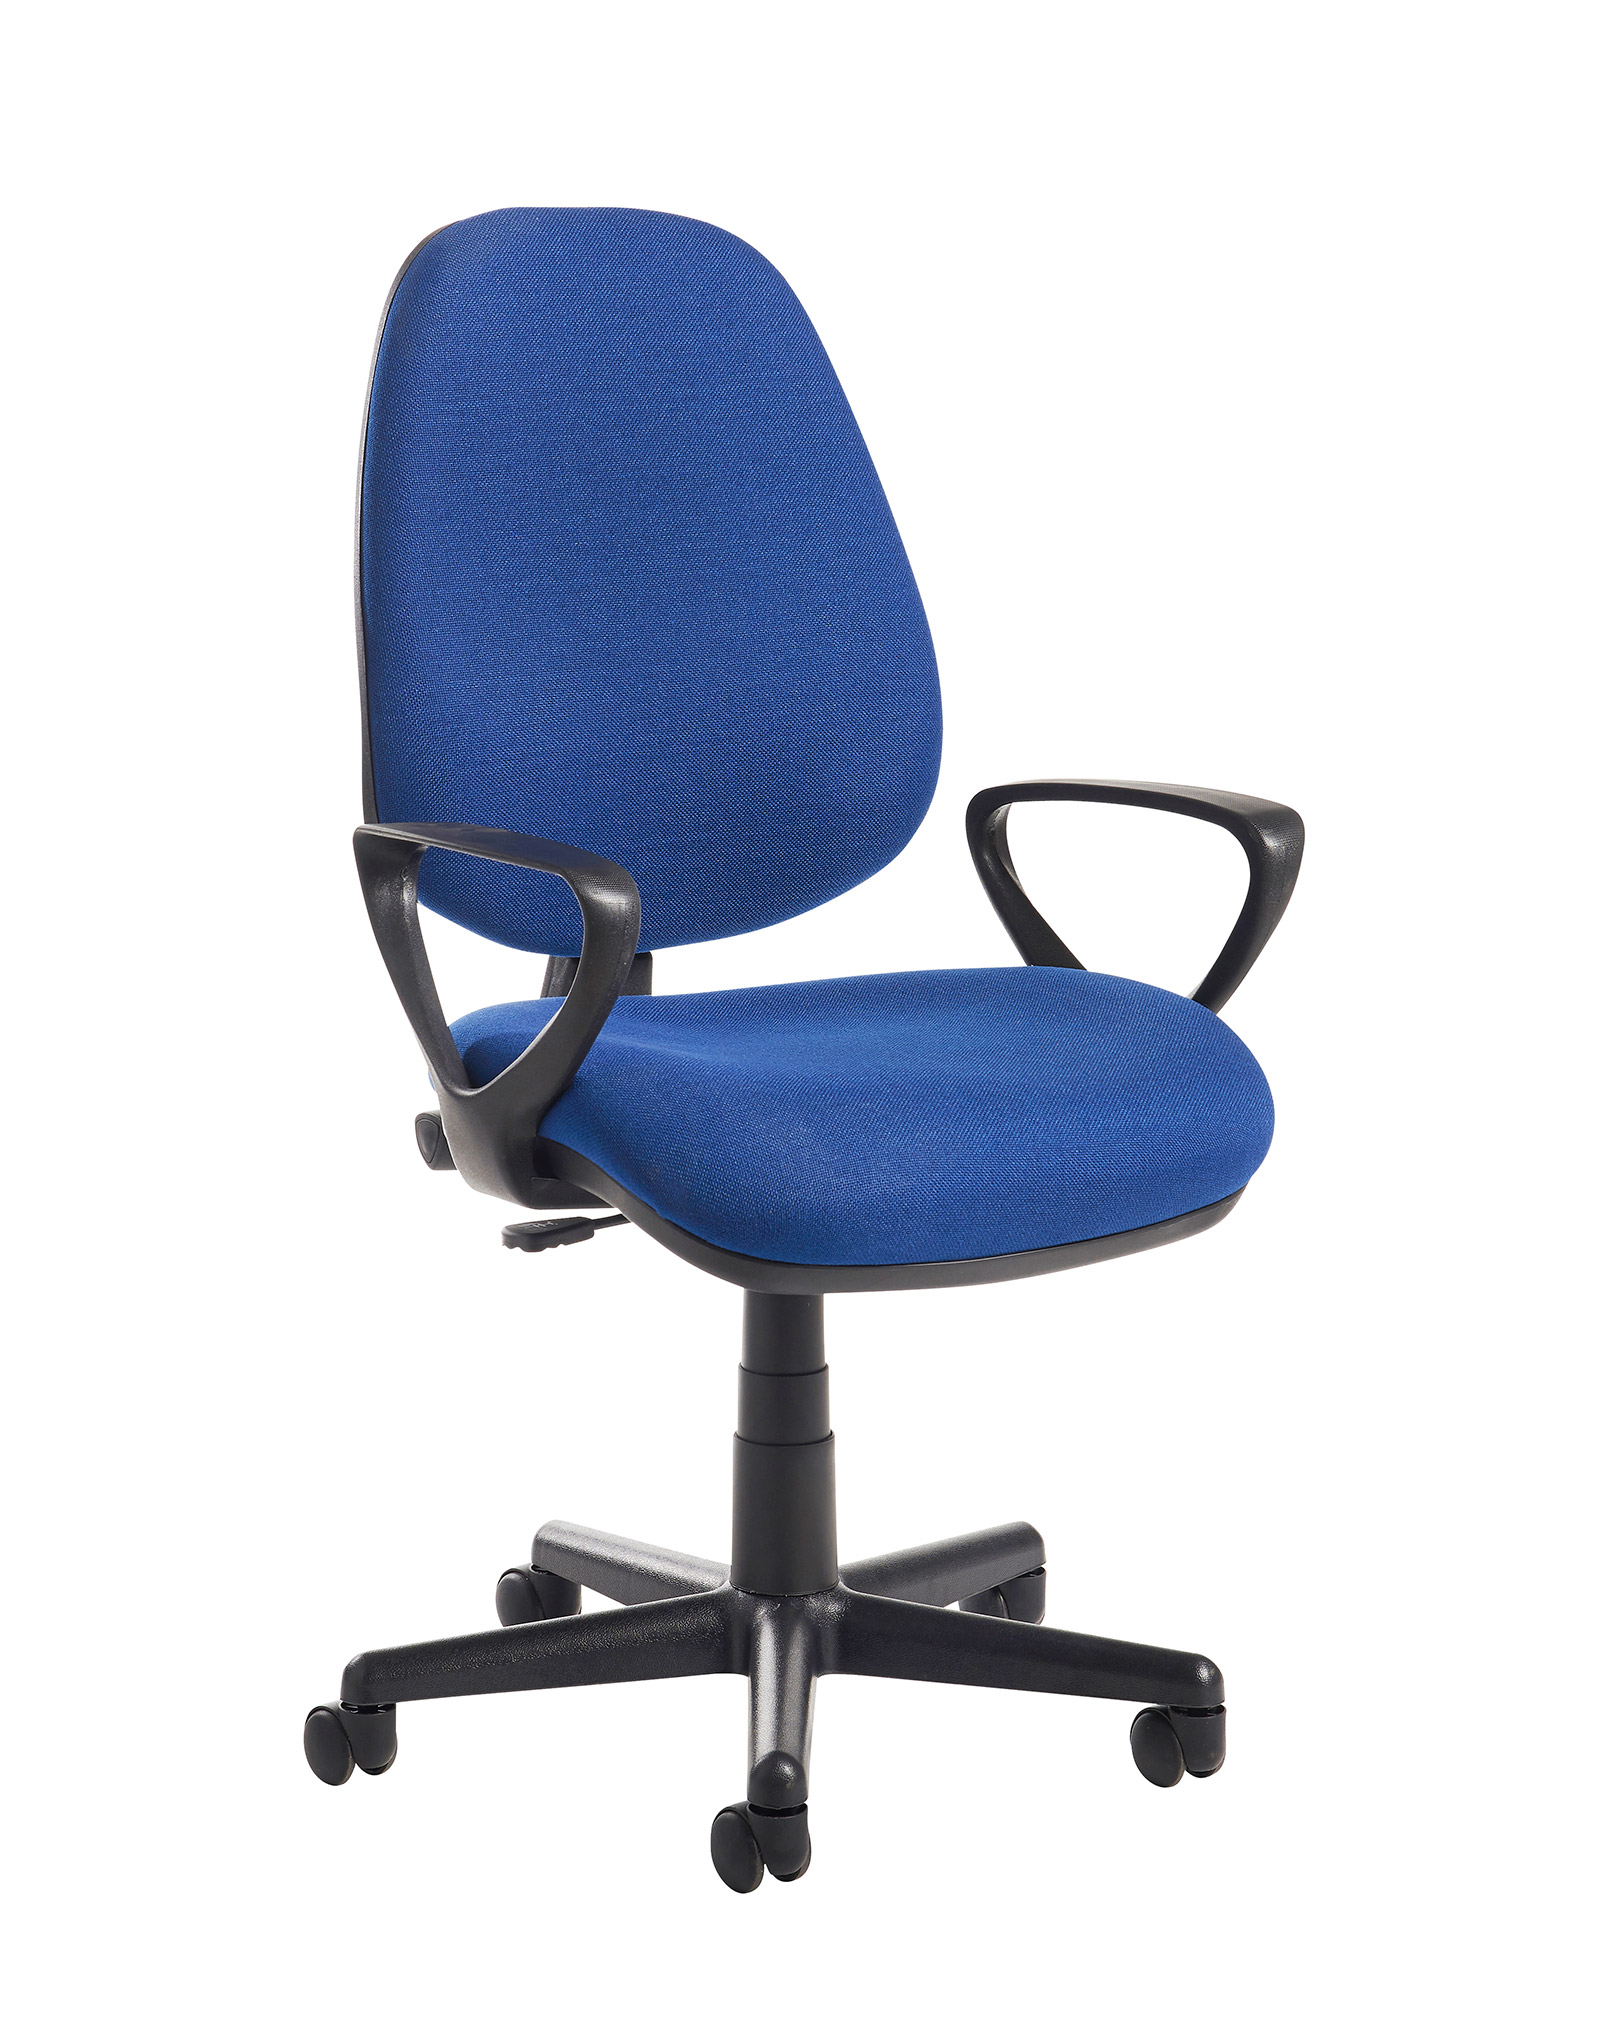 Bilbao fabric operators chair